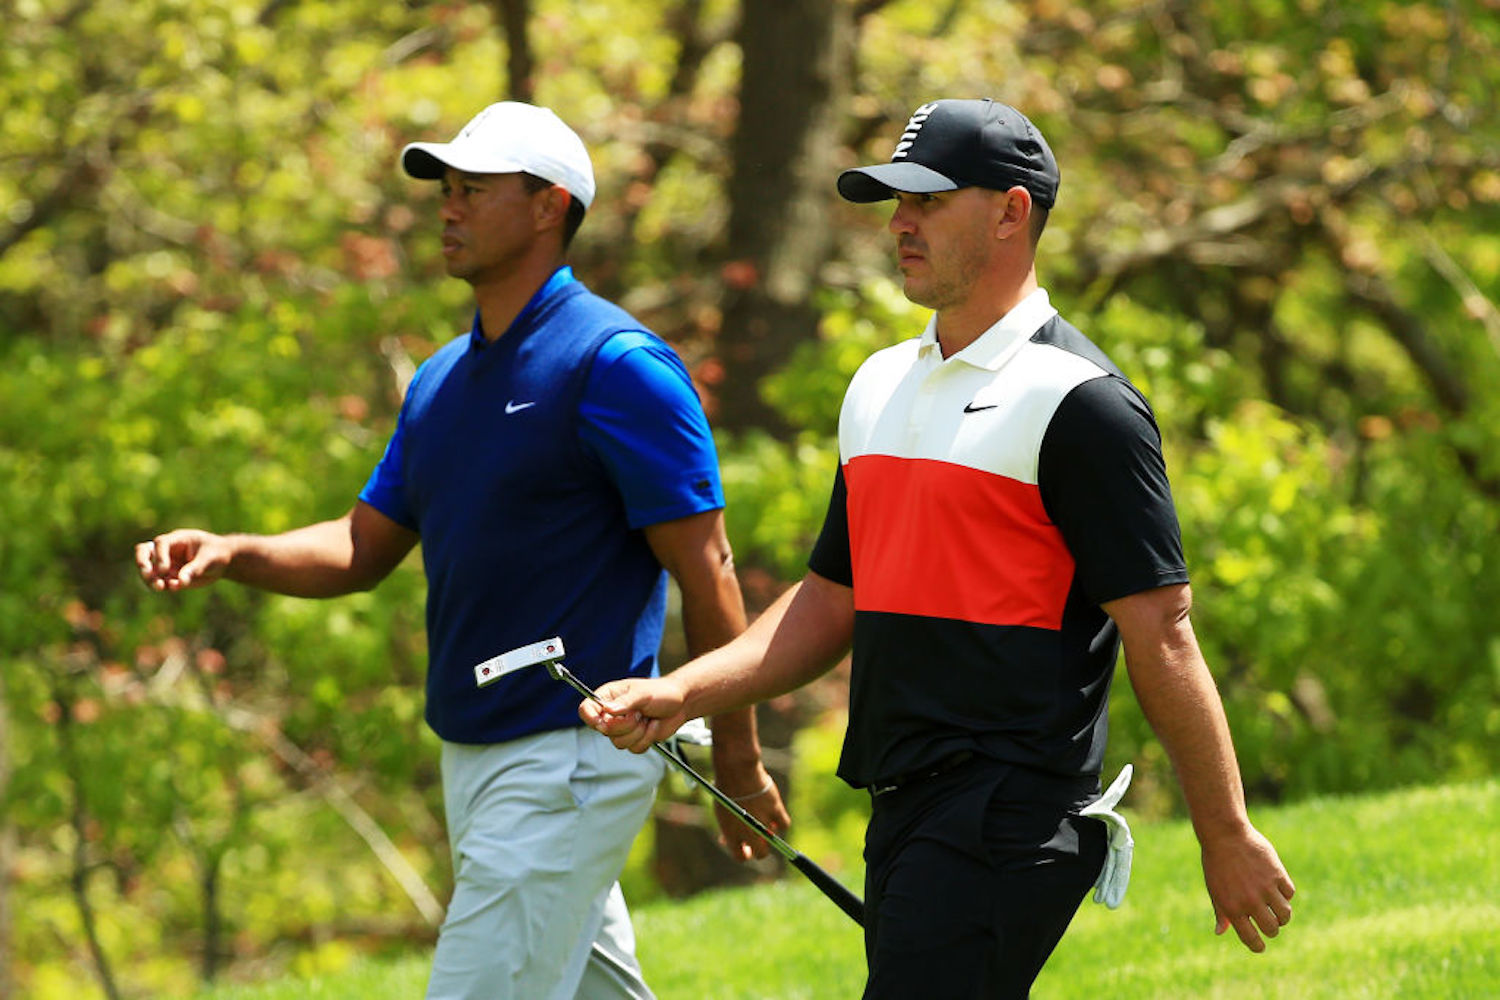 The first major of 2020 if finally here. Here's a look at the 2020 PGA Championship betting odds, picks, and longshots with great value.